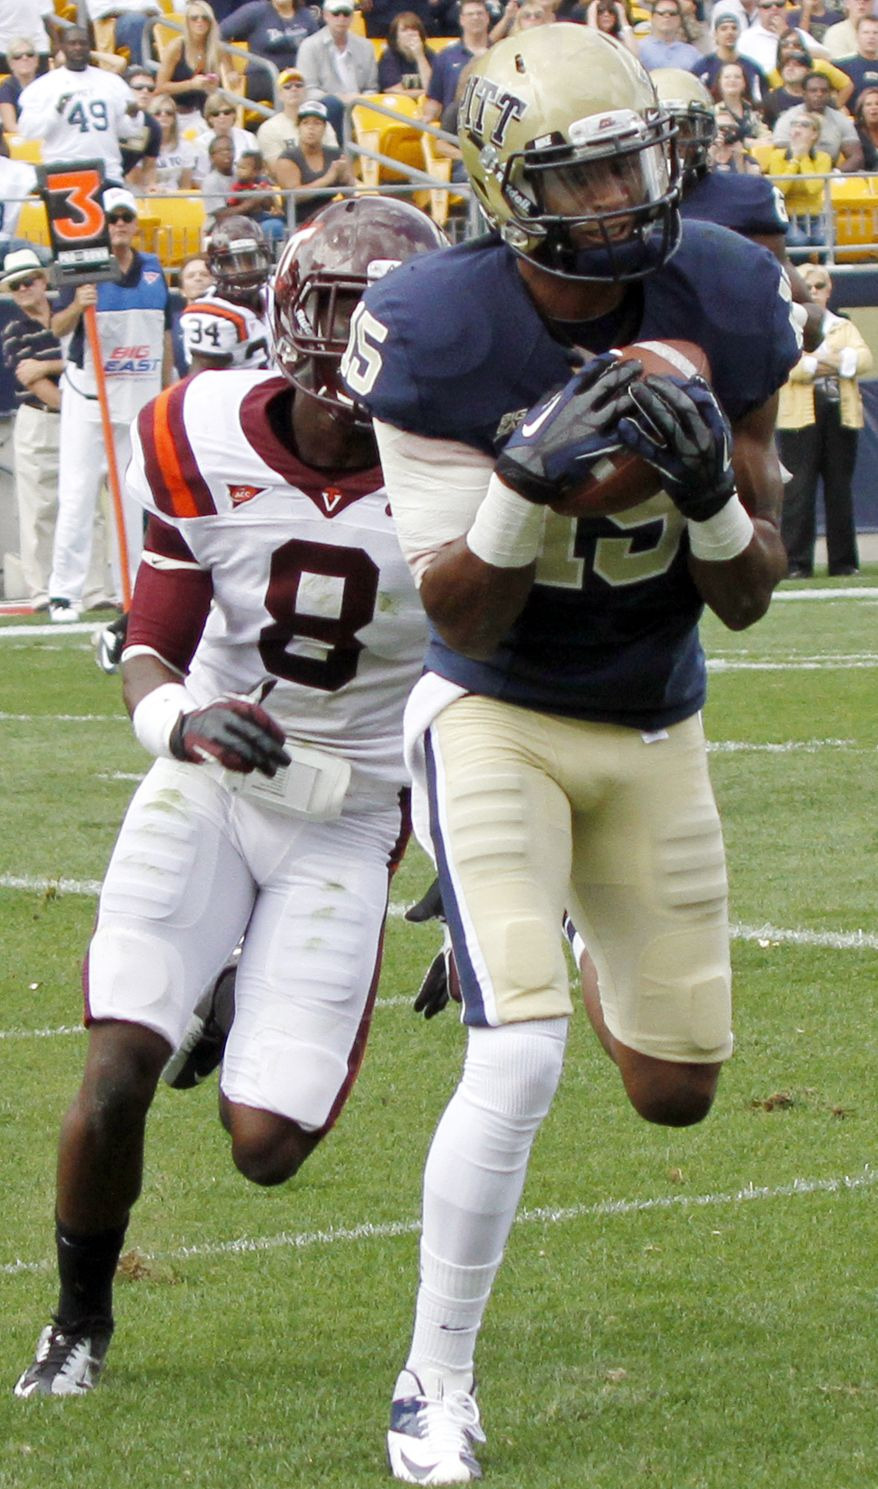 Pittsburgh wide receiver Devin Street (15) catches a pass for a touchdown in front of Virginia Tech safety Detrick Bonner (8) in the first quarter of their NCAA college football game, Saturday, Sept. 15, 2012, in Pittsburgh. Pittsburgh won 35-17. (AP Photo/Keith Srakocic)